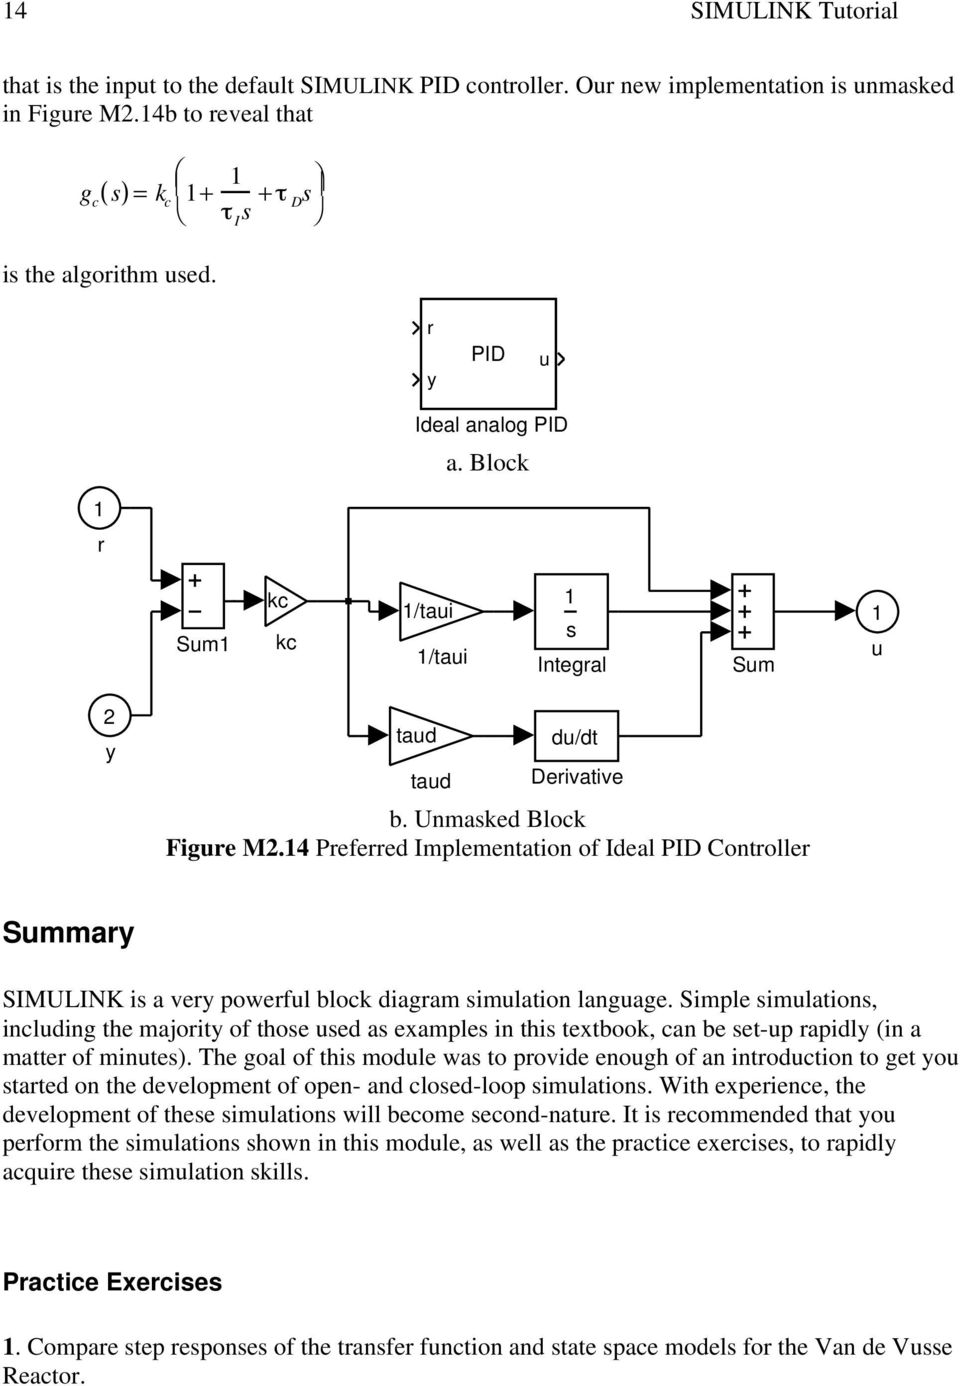 hight resolution of 4 preferred implementation of ideal pid controller summary simulink is a very powerful block diagram simulation